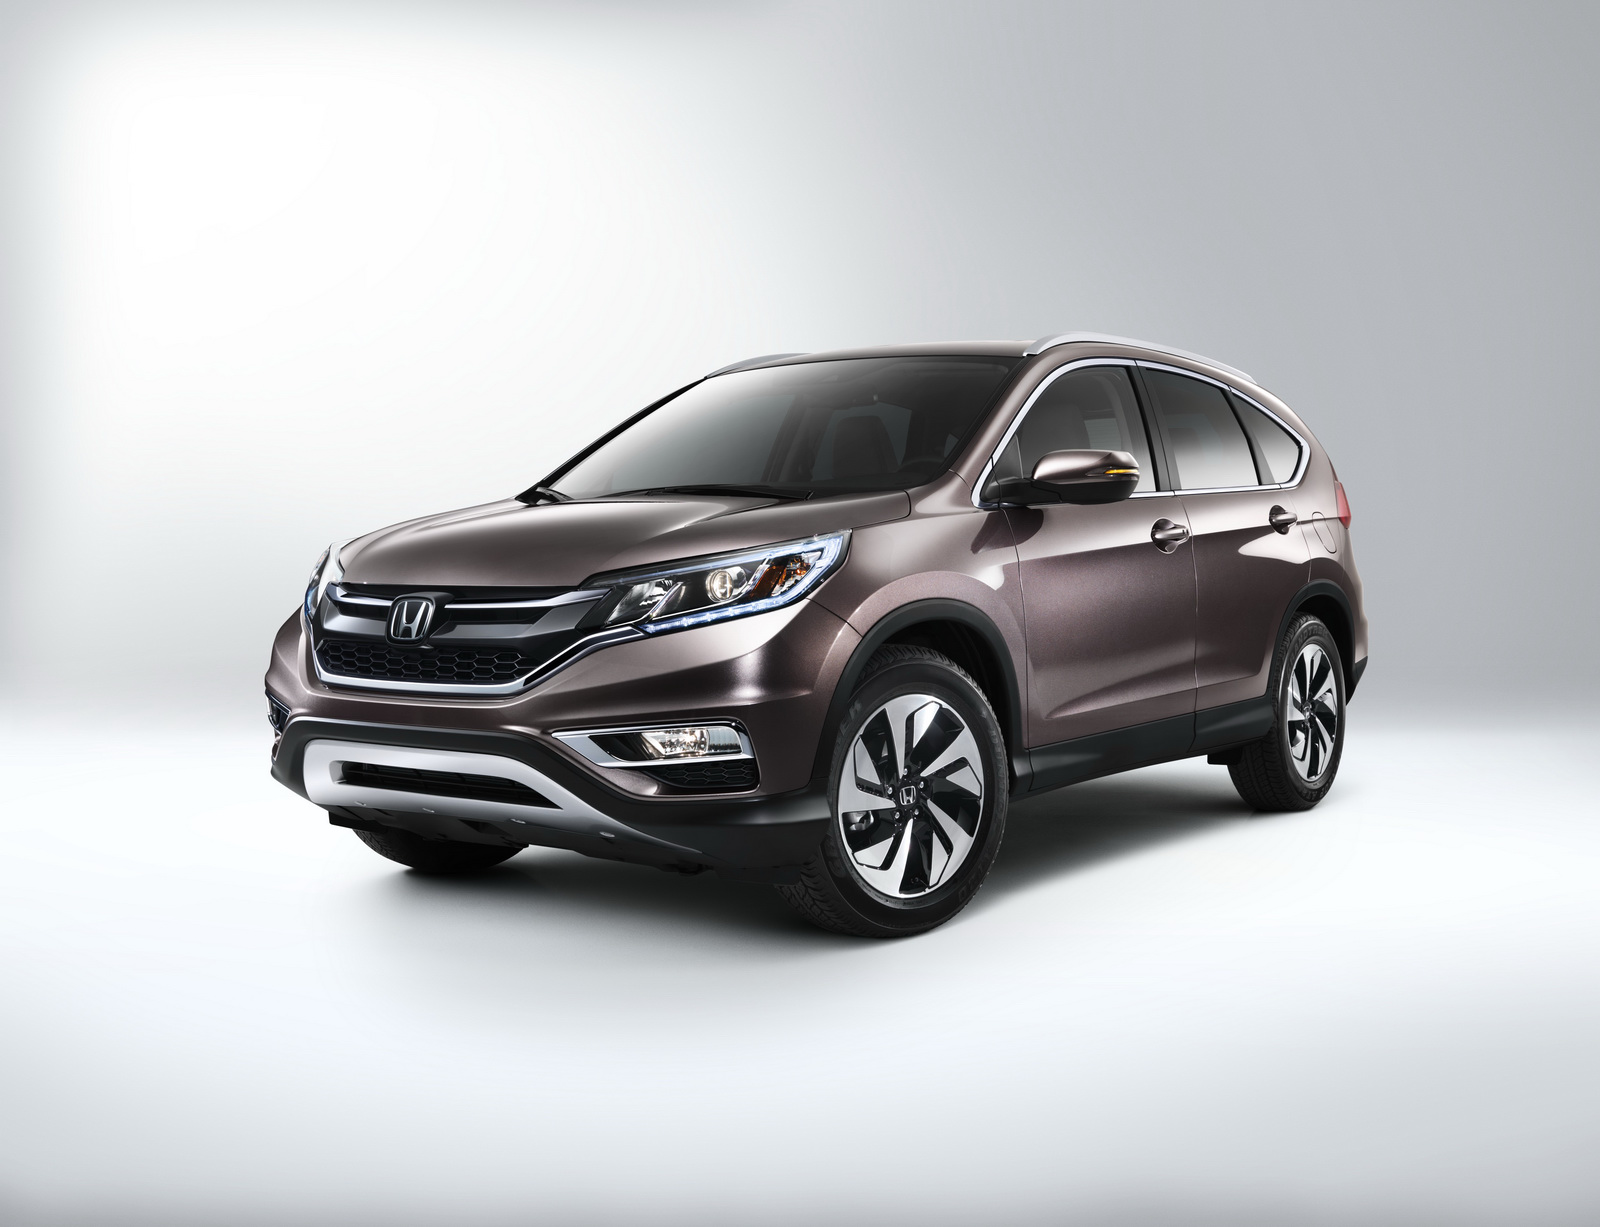 honda cr-v iv 2015 models